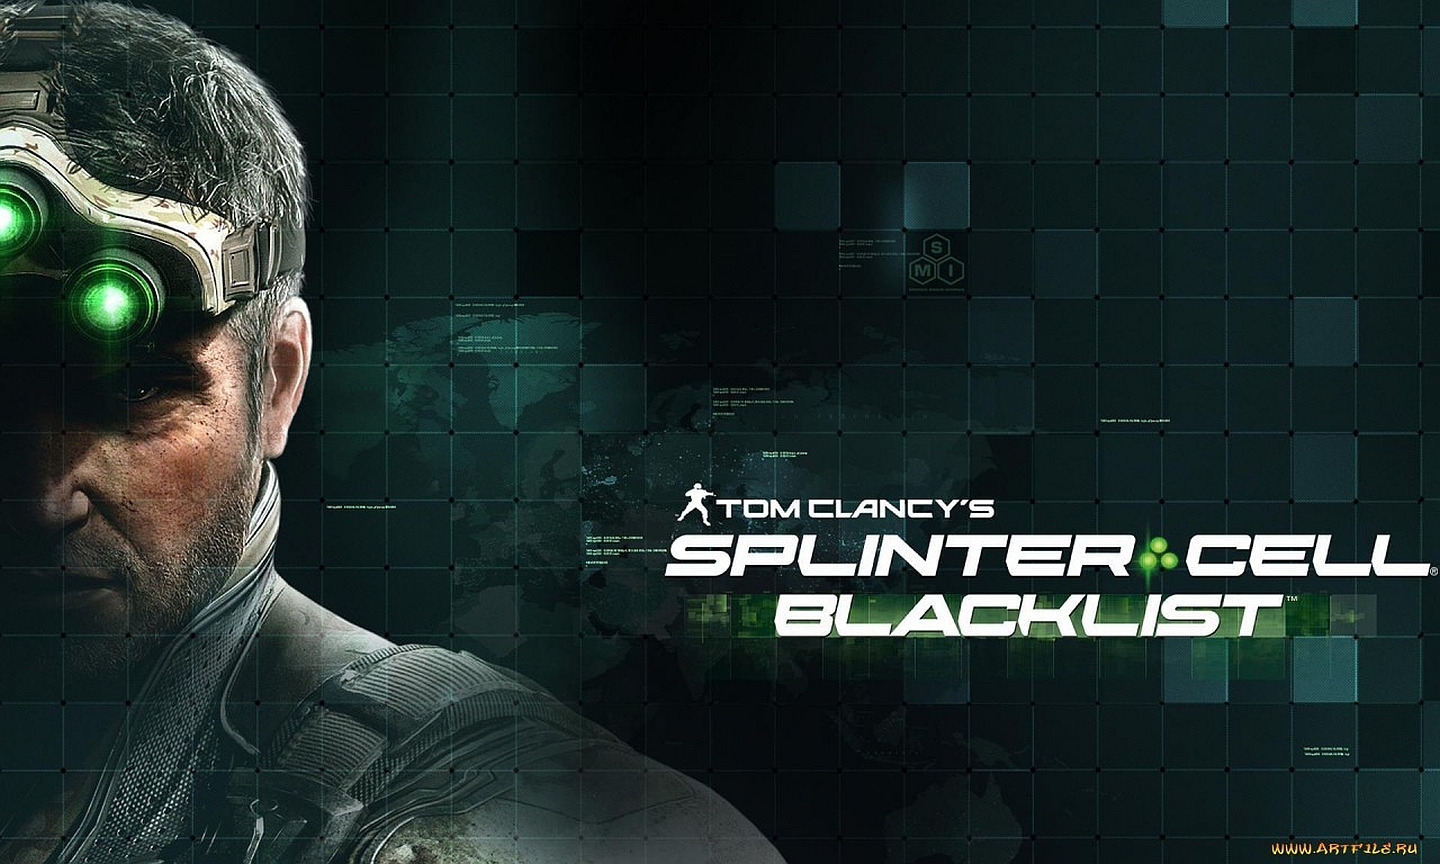 Tom Clancys Splinter Cell Blacklist Fondo De Pantalla And